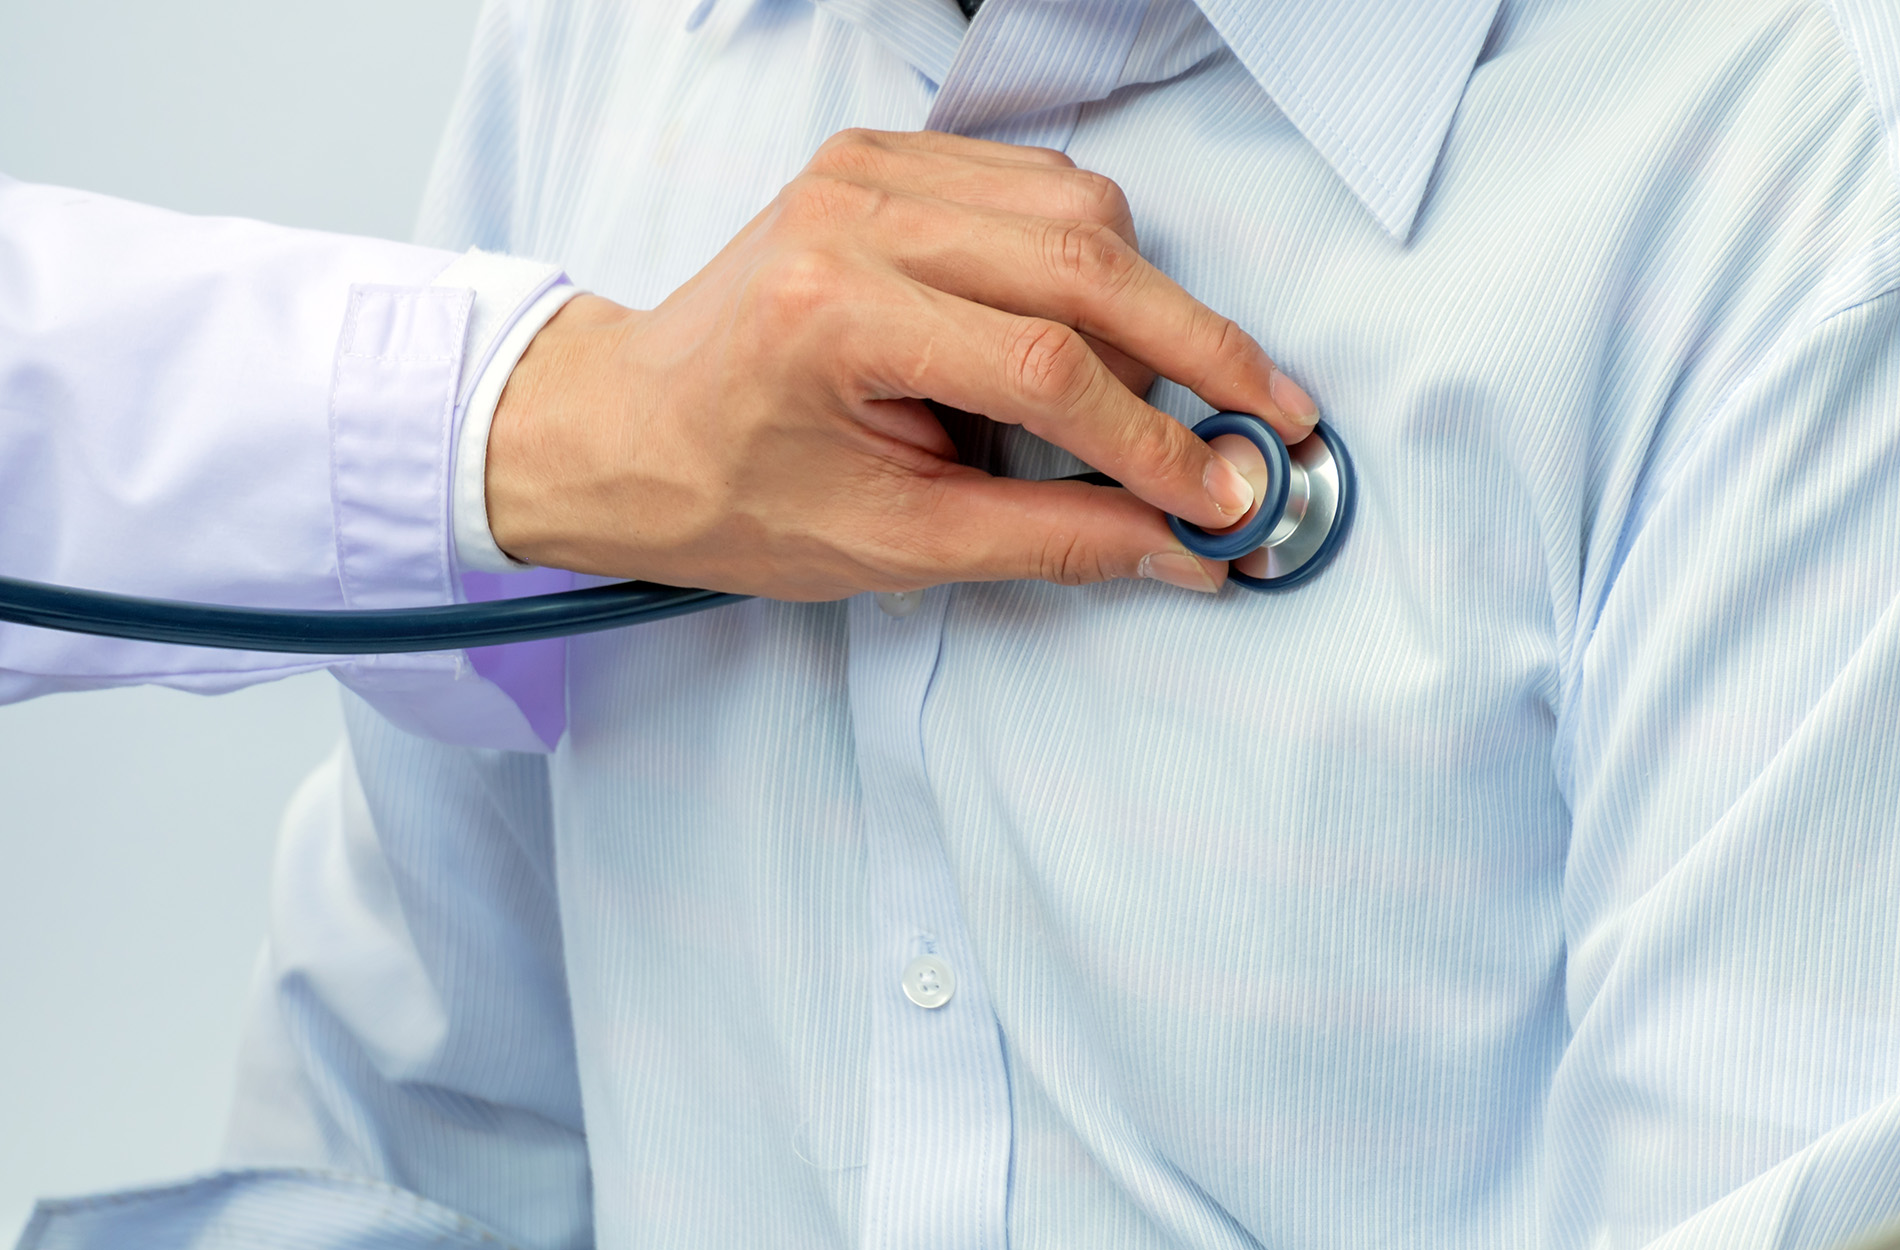 Doctor's hand holding stethoscope on patient's chest